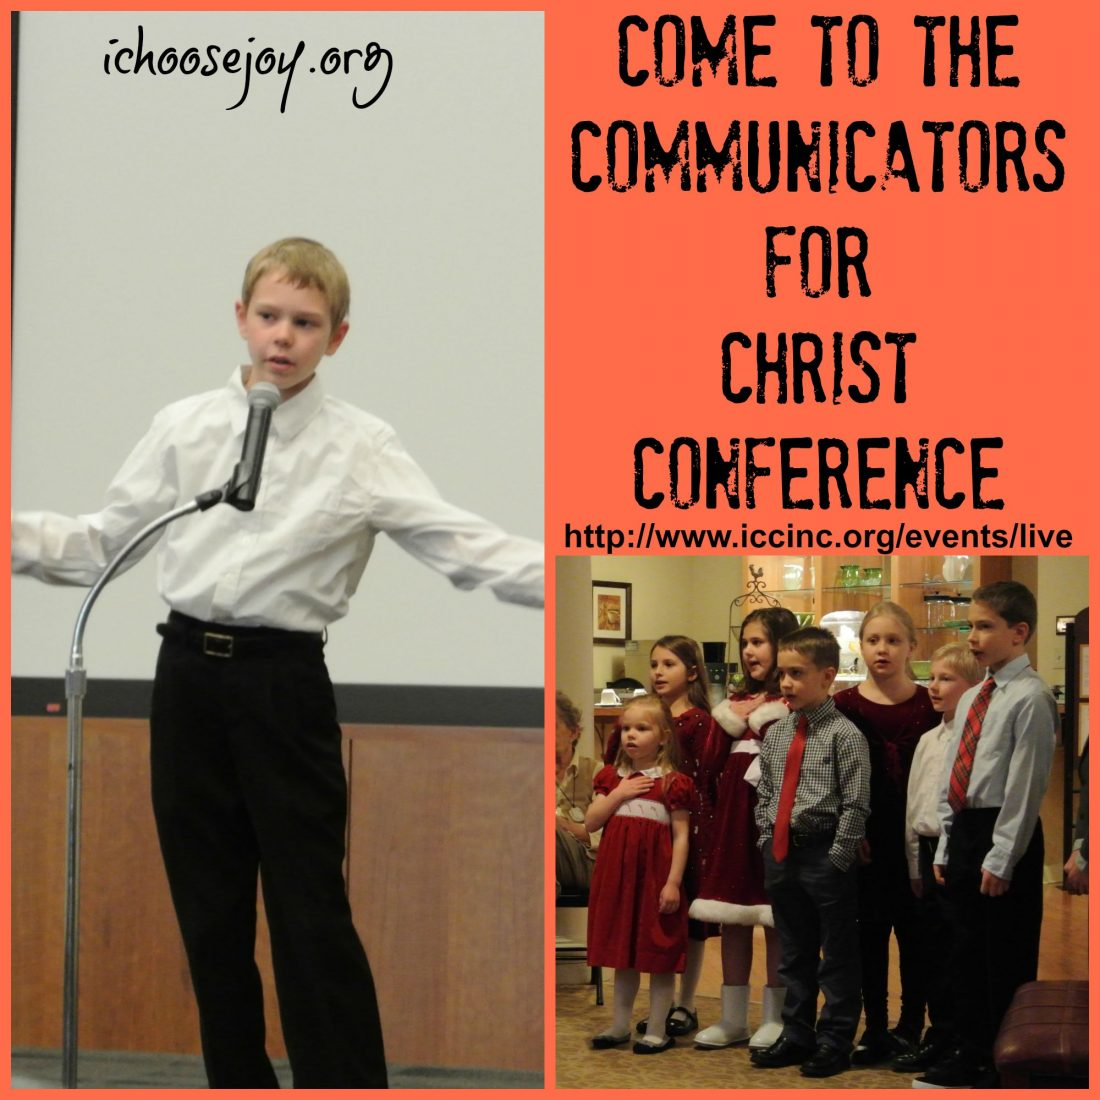 Come to the Communicators for Christ Conference!